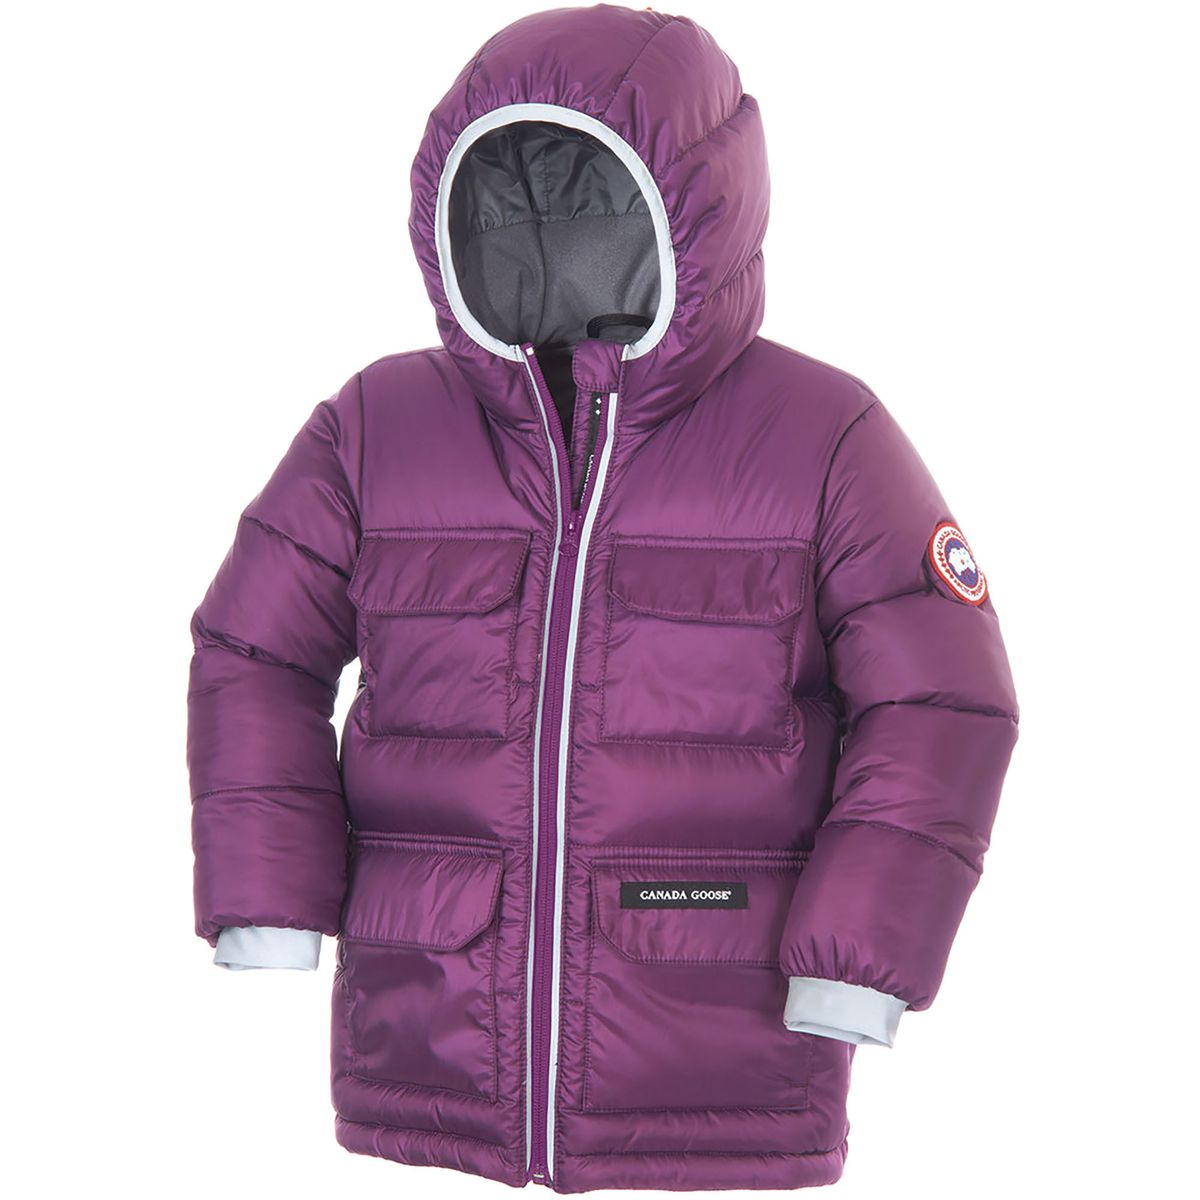 Canada Goose Otter Down Jacket - Toddler Girls